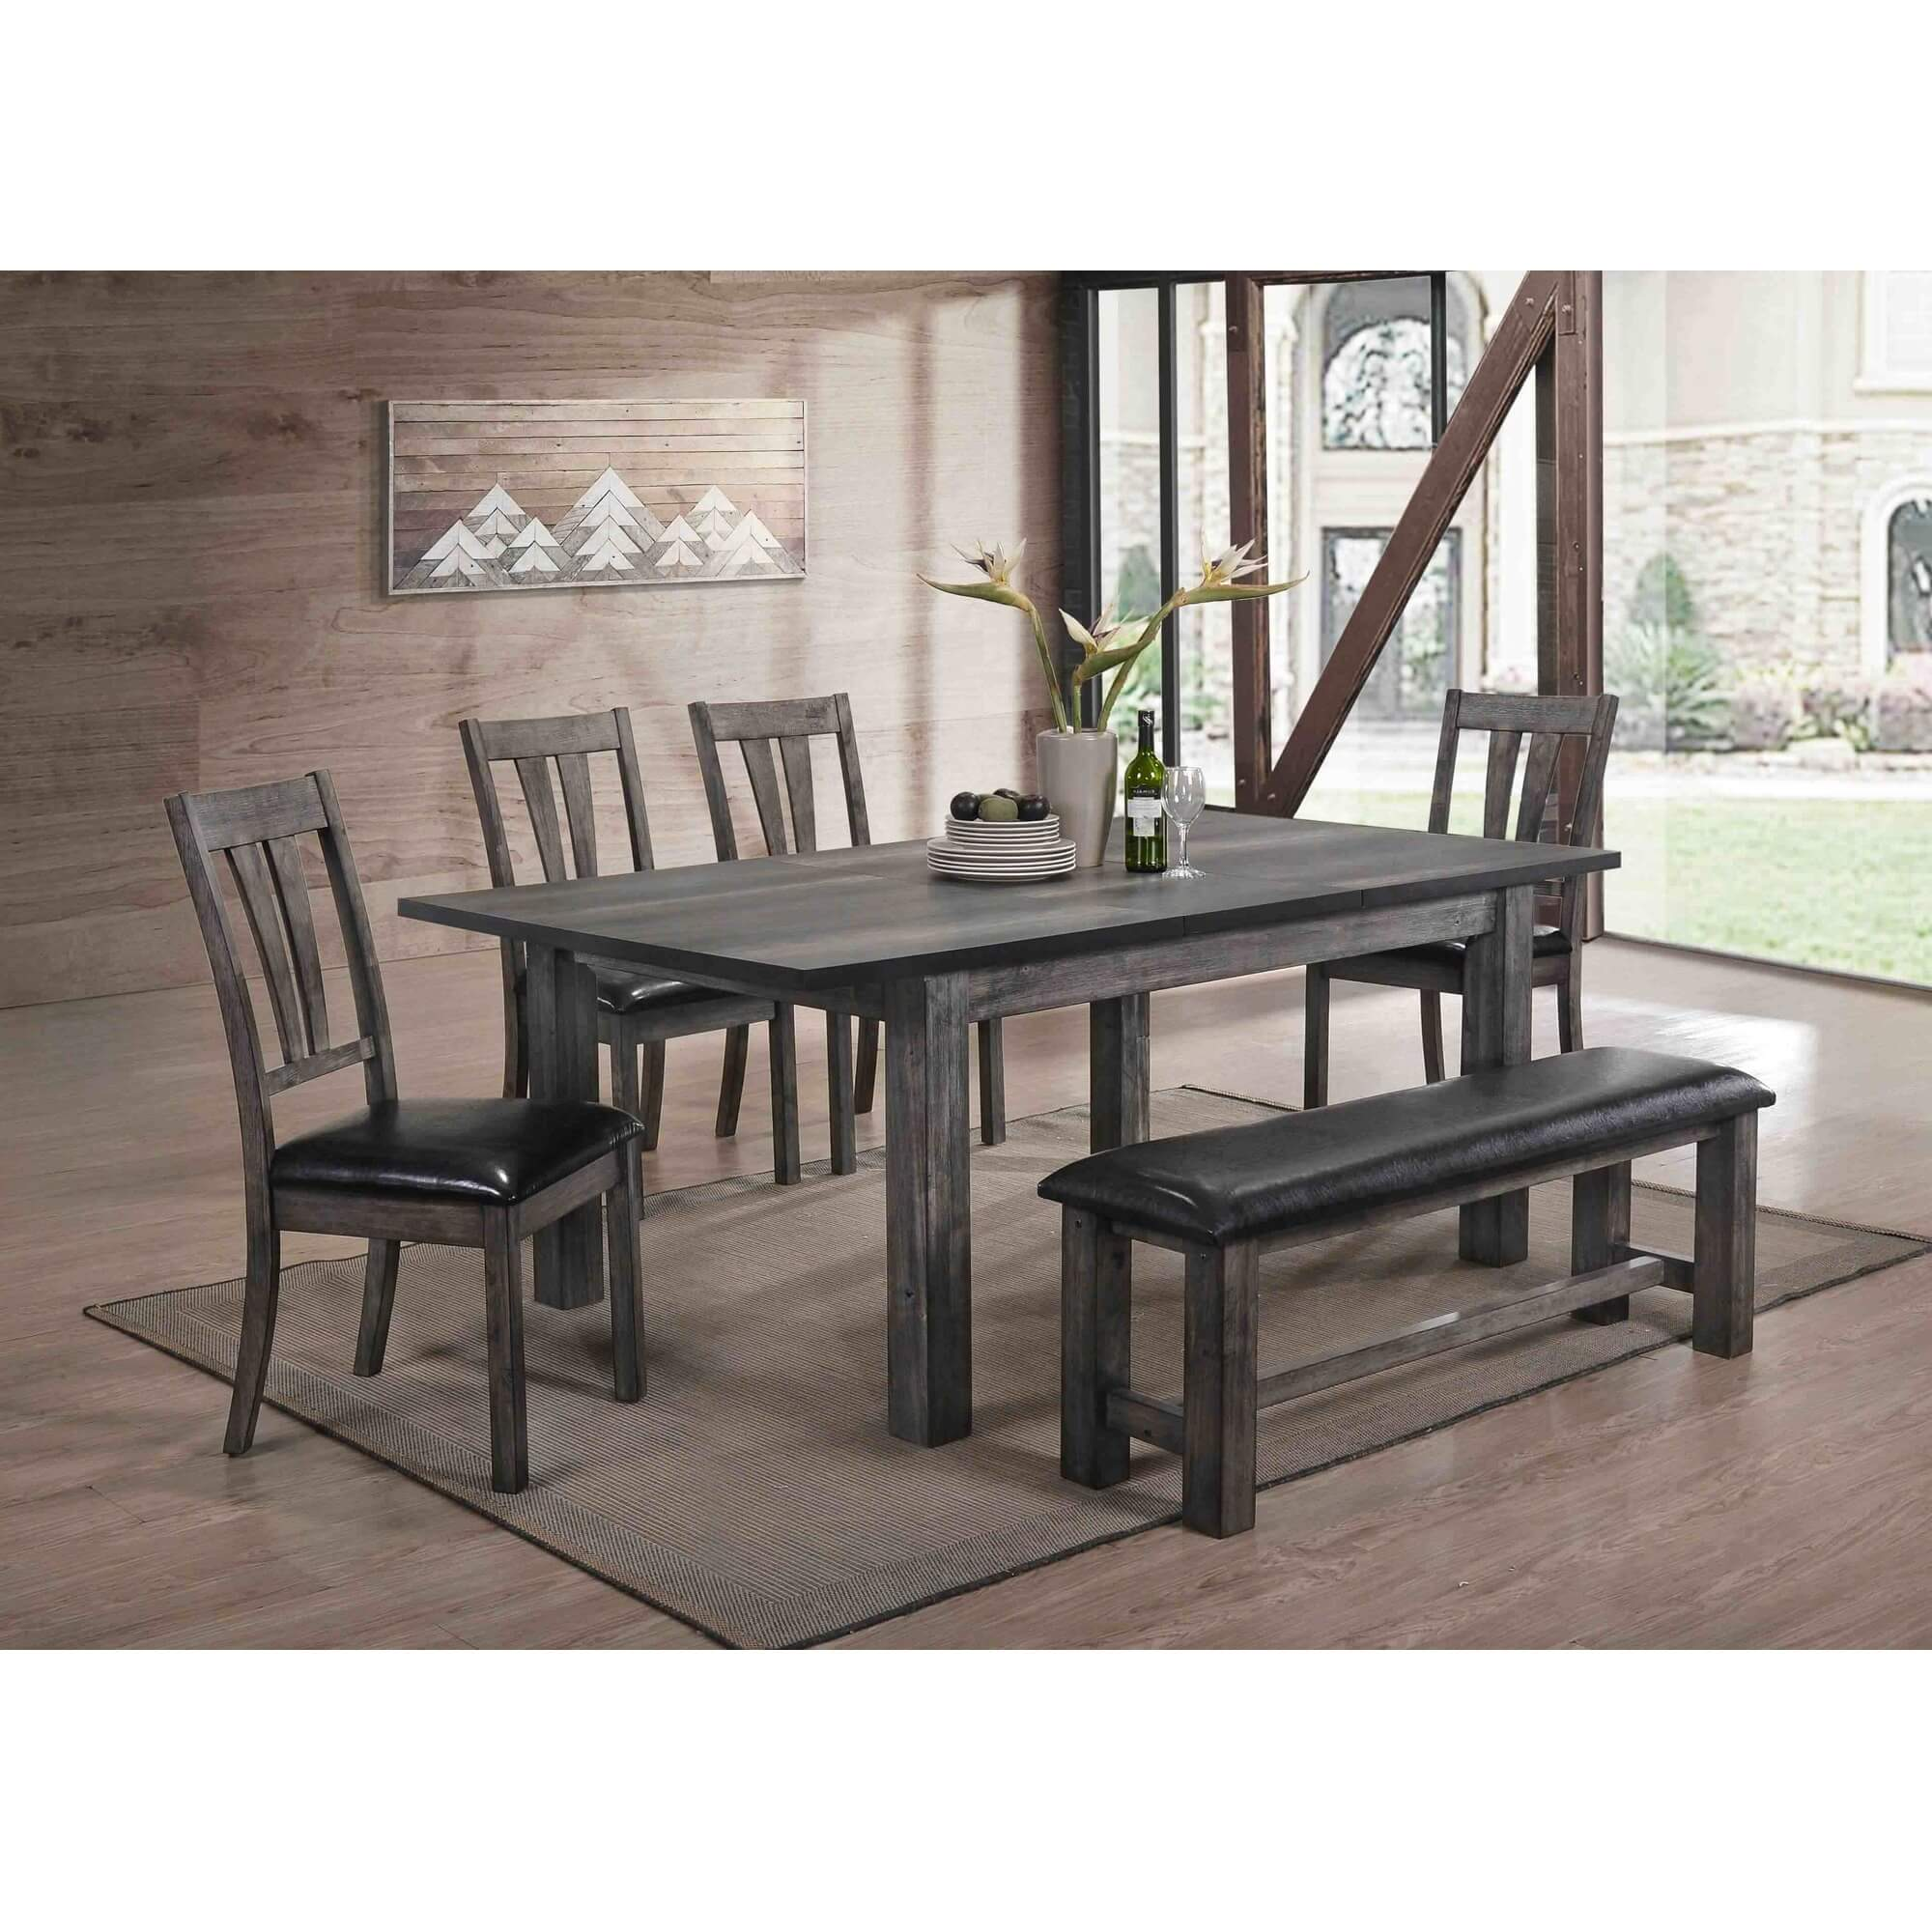 Rent To Own Elements International 6 Piece Nathan Dining Room Collection With Upholstered Chairs Bench At Aaron S Today